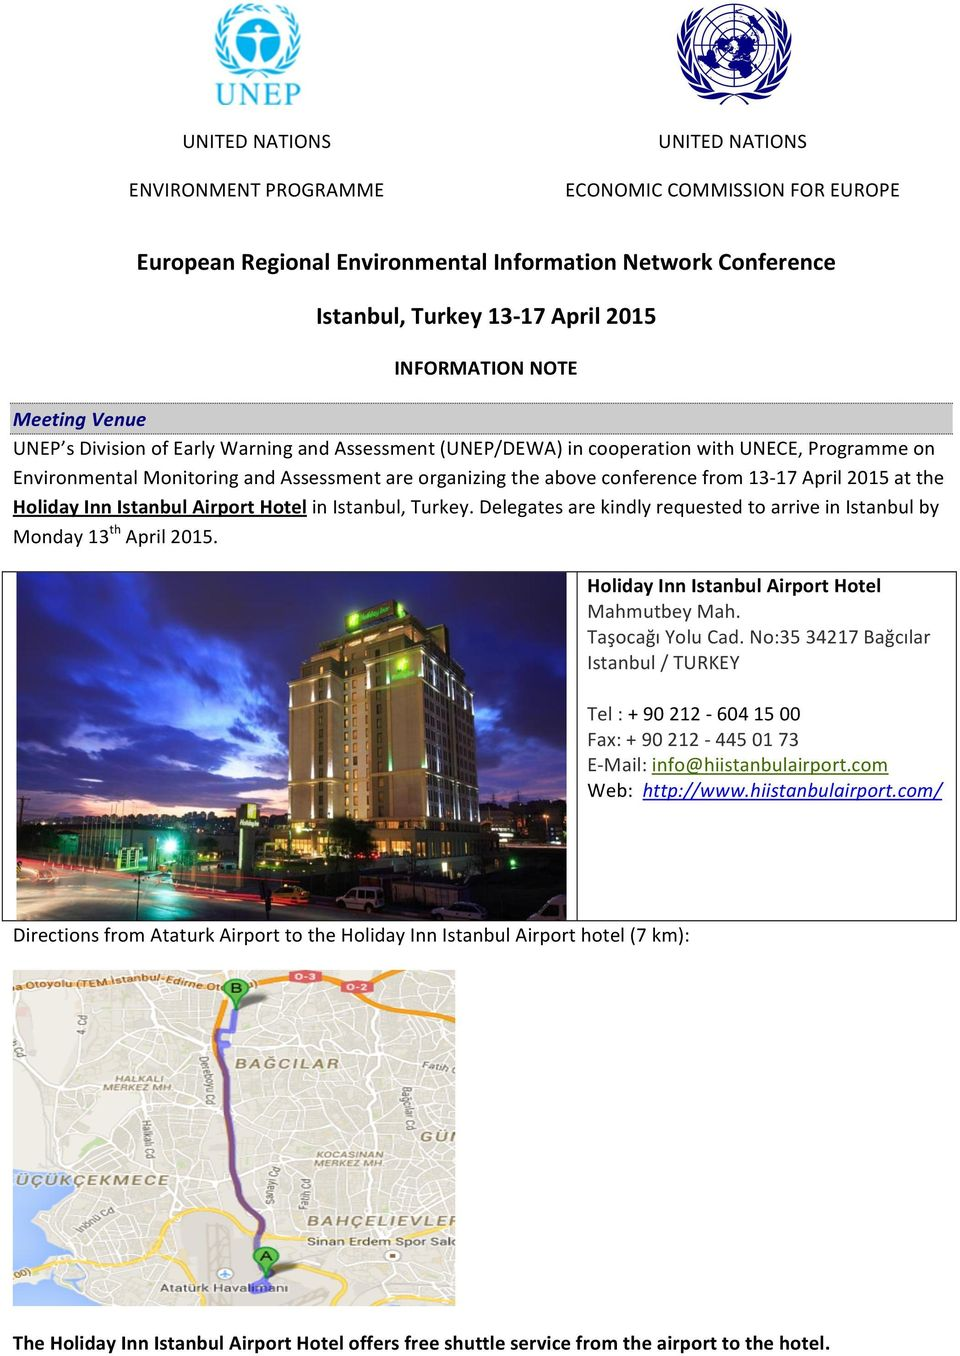 13-17 April 2015 at the Holiday Inn Istanbul Airport Hotel in Istanbul, Turkey. Delegates are kindly requested to arrive in Istanbul by Monday 13 th April 2015.